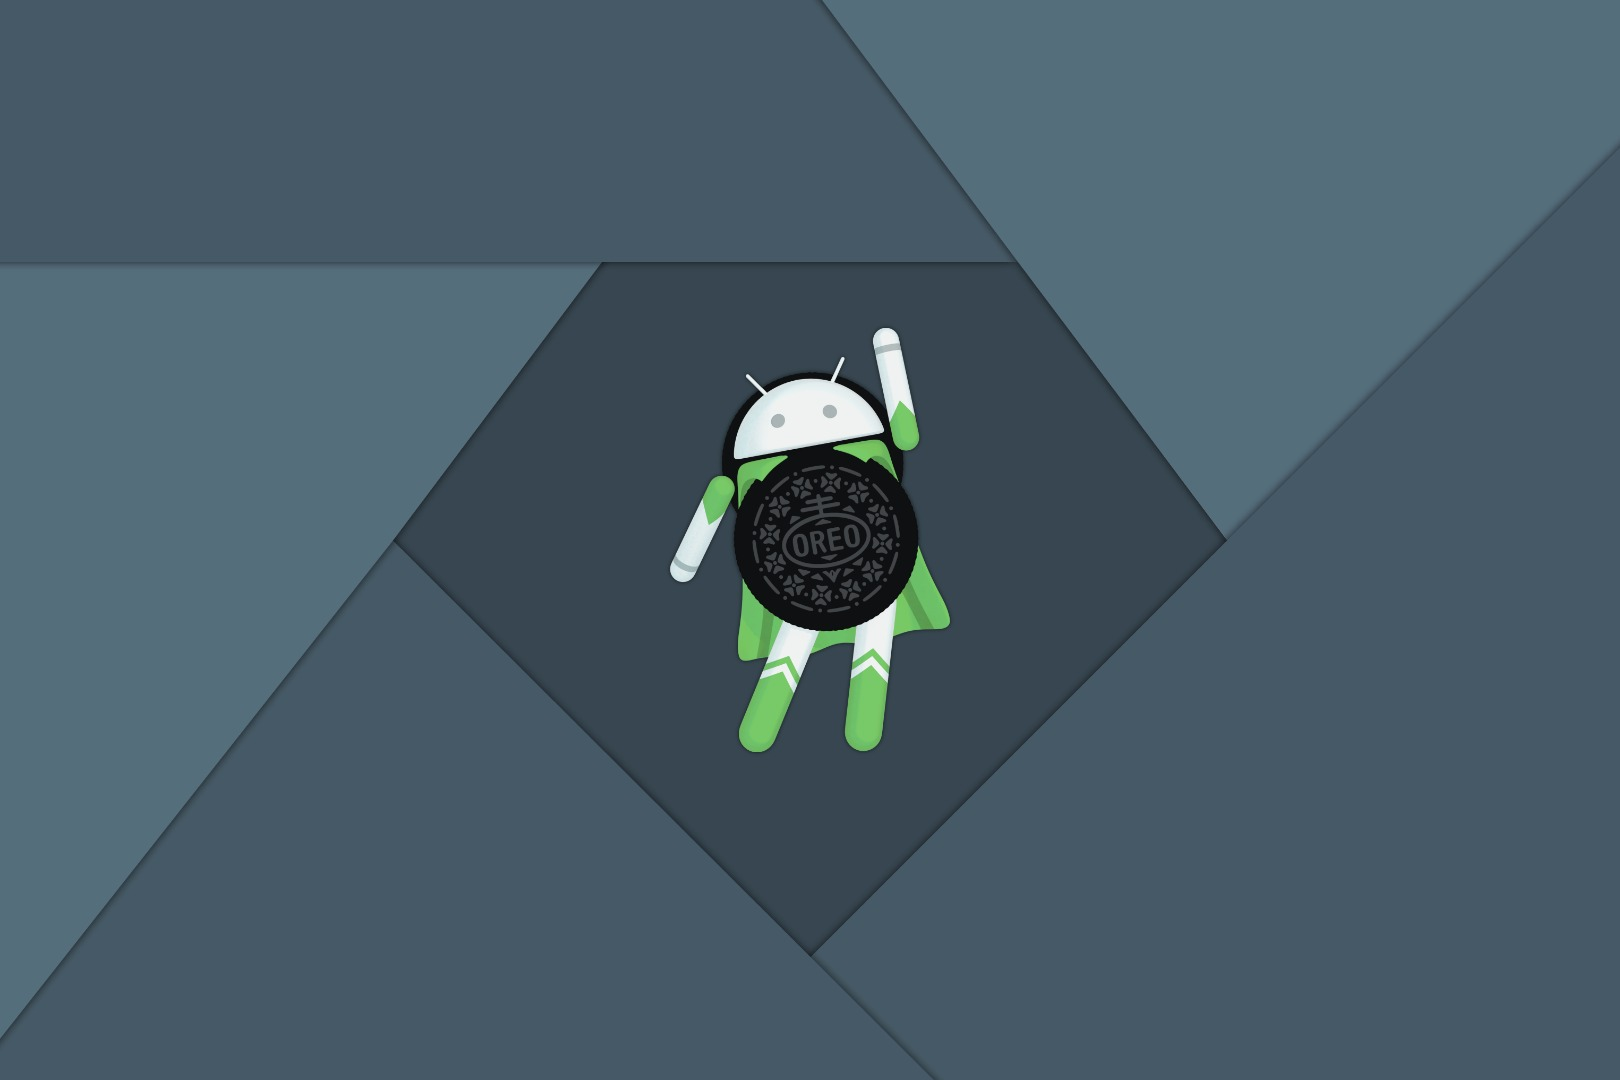 Android Oreo HD Wallpapers in Material Design - Free Download